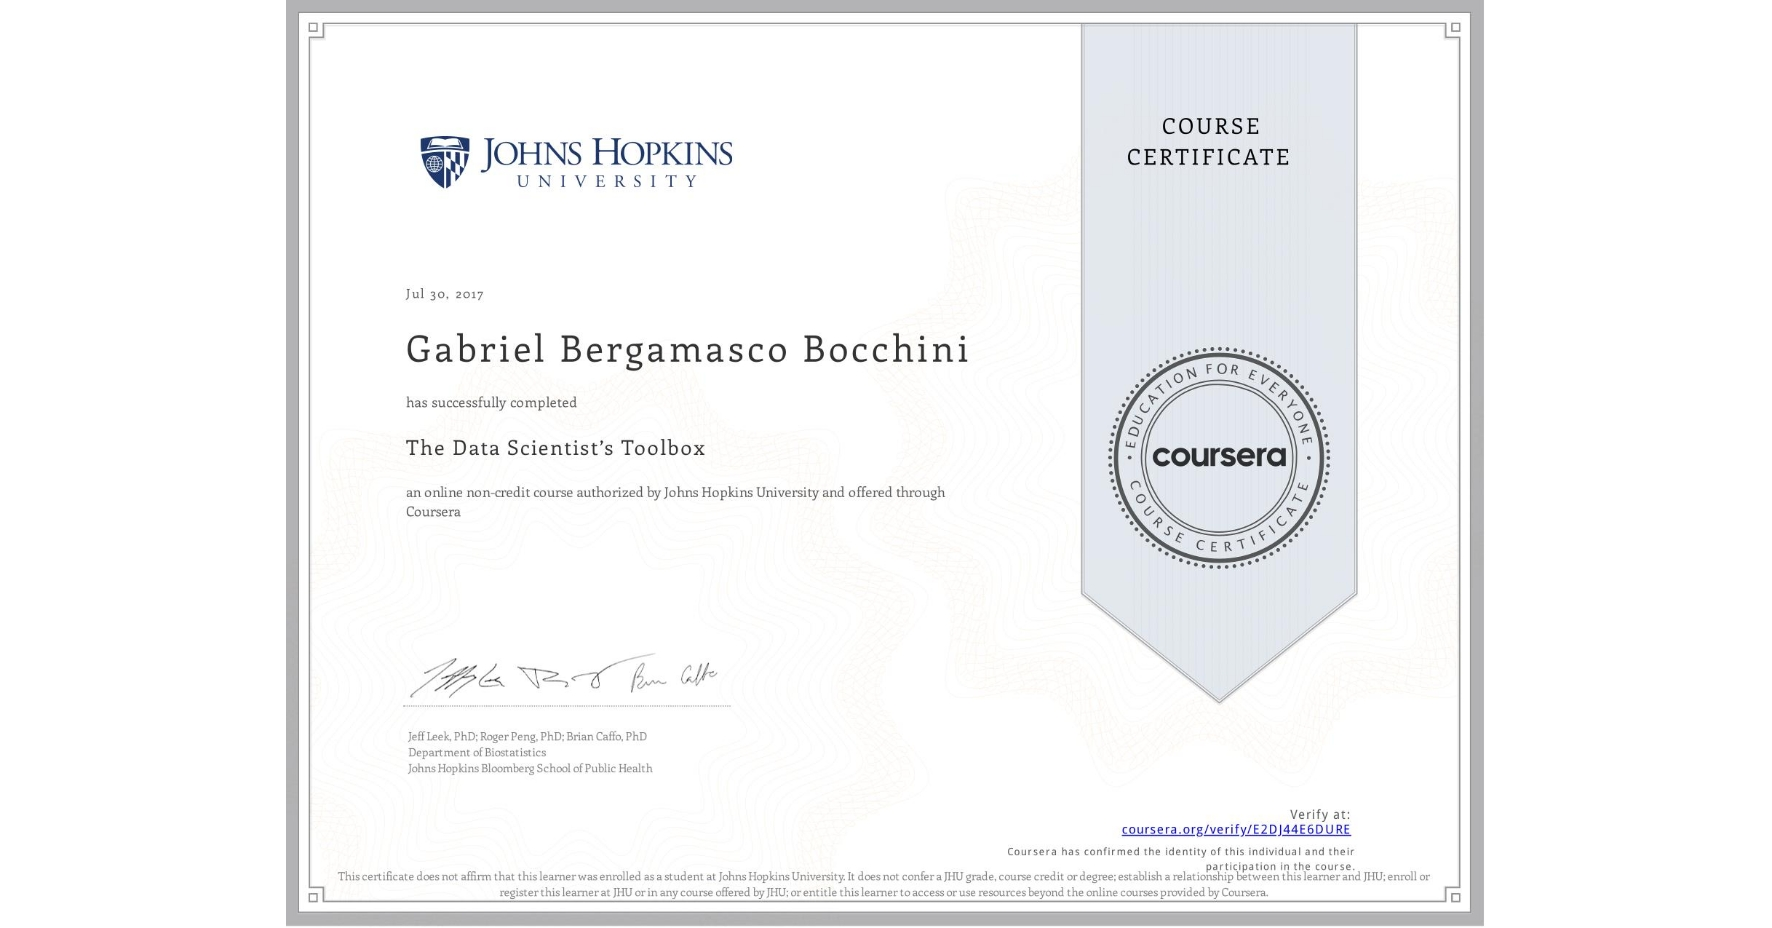 View certificate for Gabriel Bergamasco Bocchini, The Data Scientist's Toolbox, an online non-credit course authorized by Johns Hopkins University and offered through Coursera